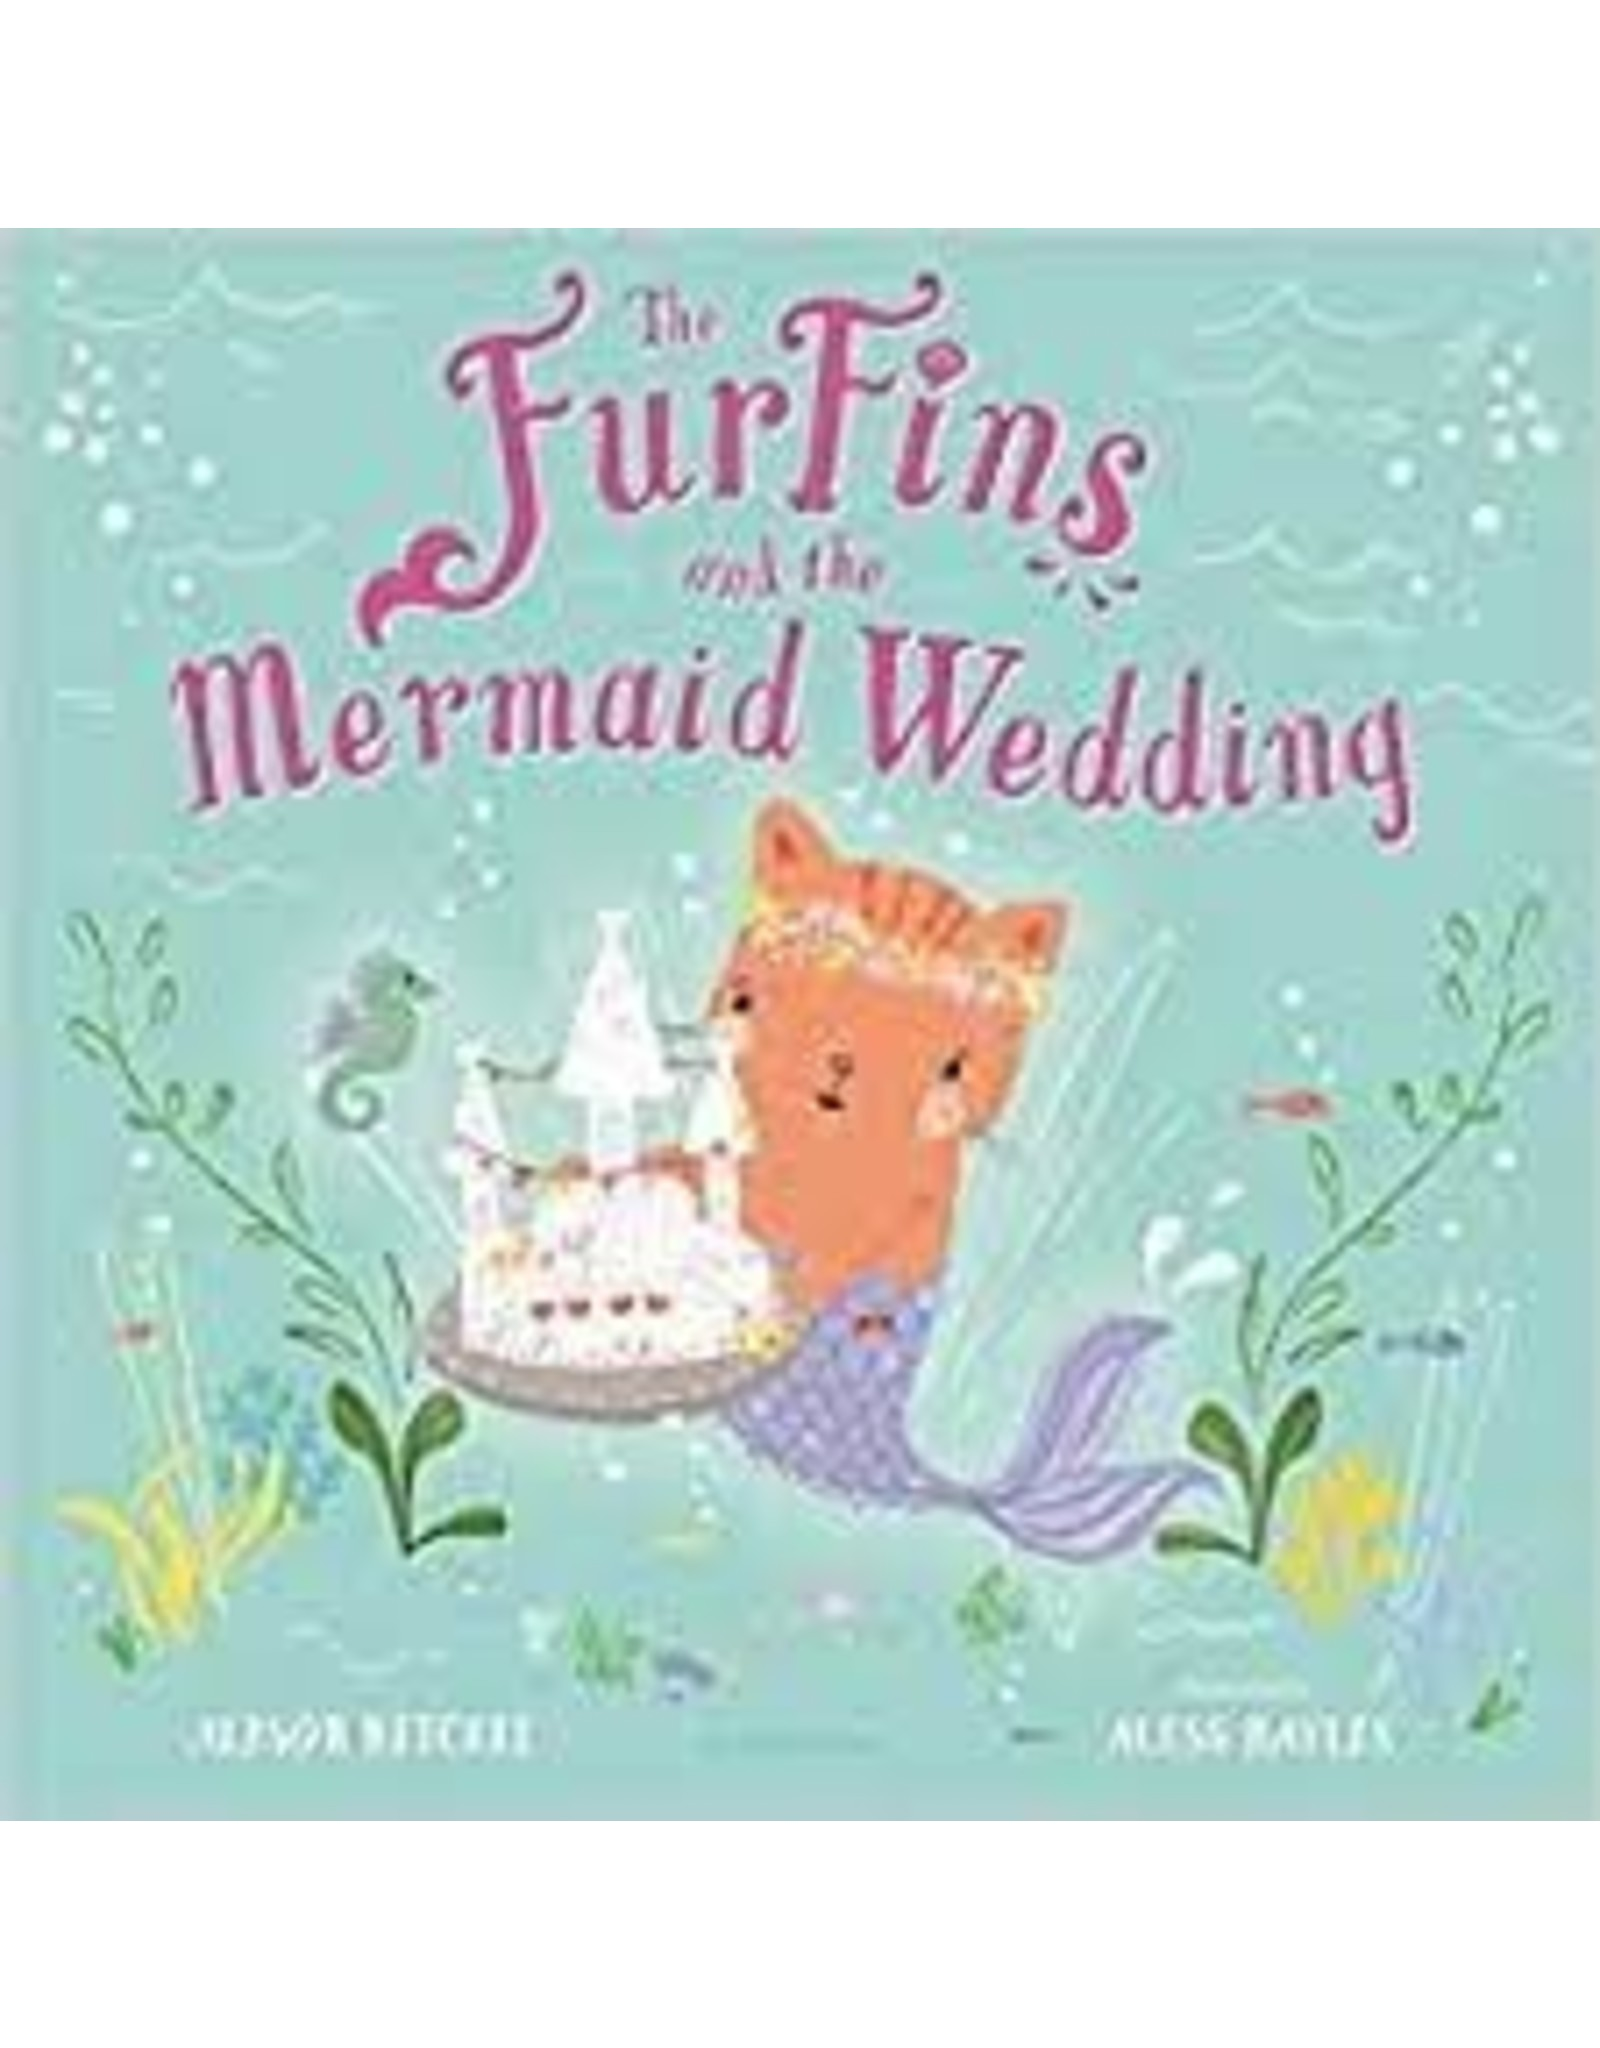 Books The Furfins and the Mermaid Wedding by Alison Ritchie Illustrated by Aless Baylis